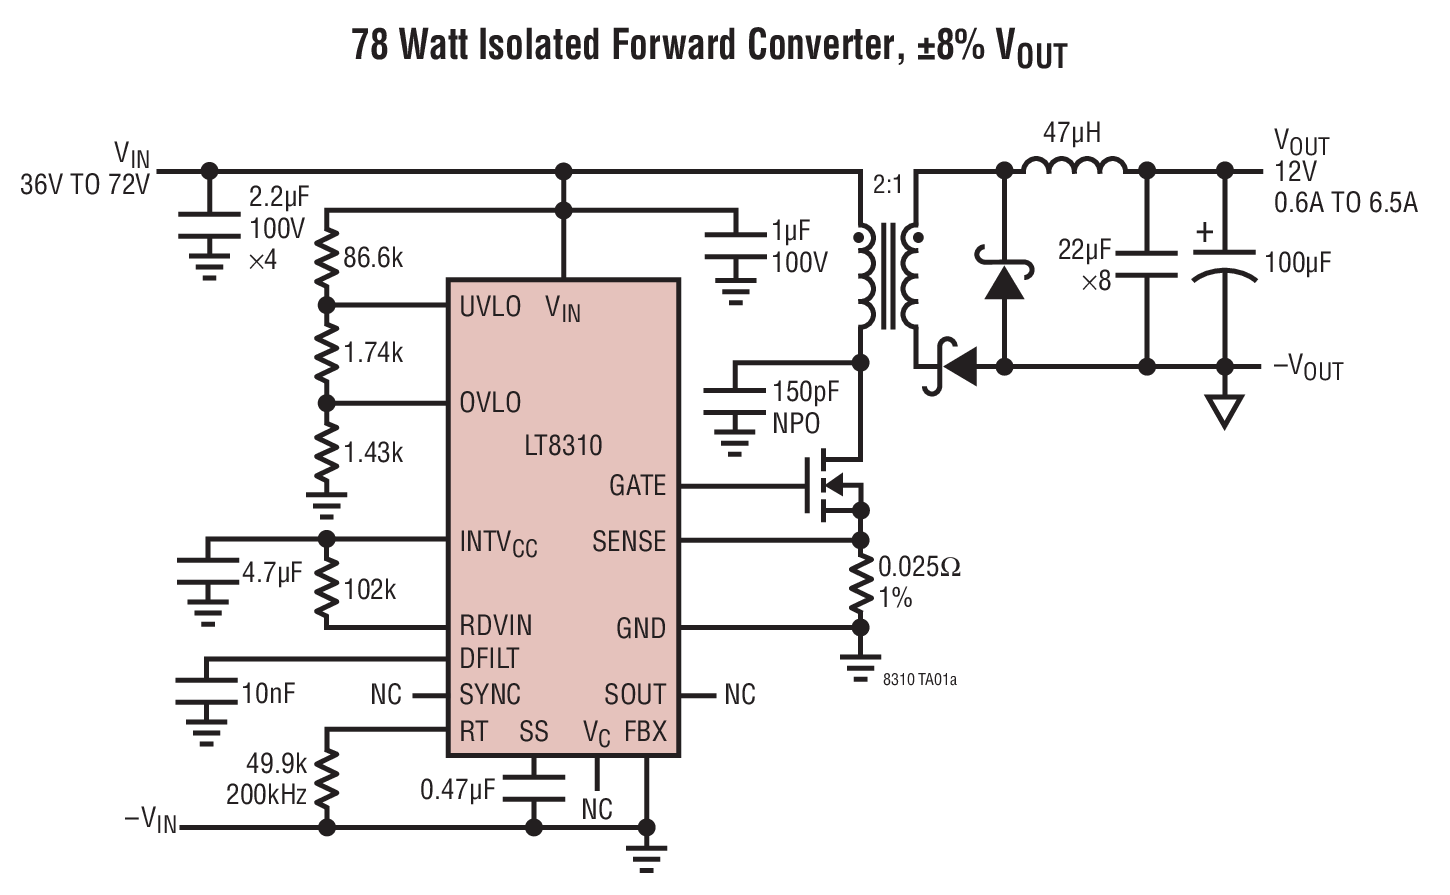 Lt8310 Datasheet The Is A Simple To Use Resonant Reset Forward Linear Opto Isolator Circuits Photo